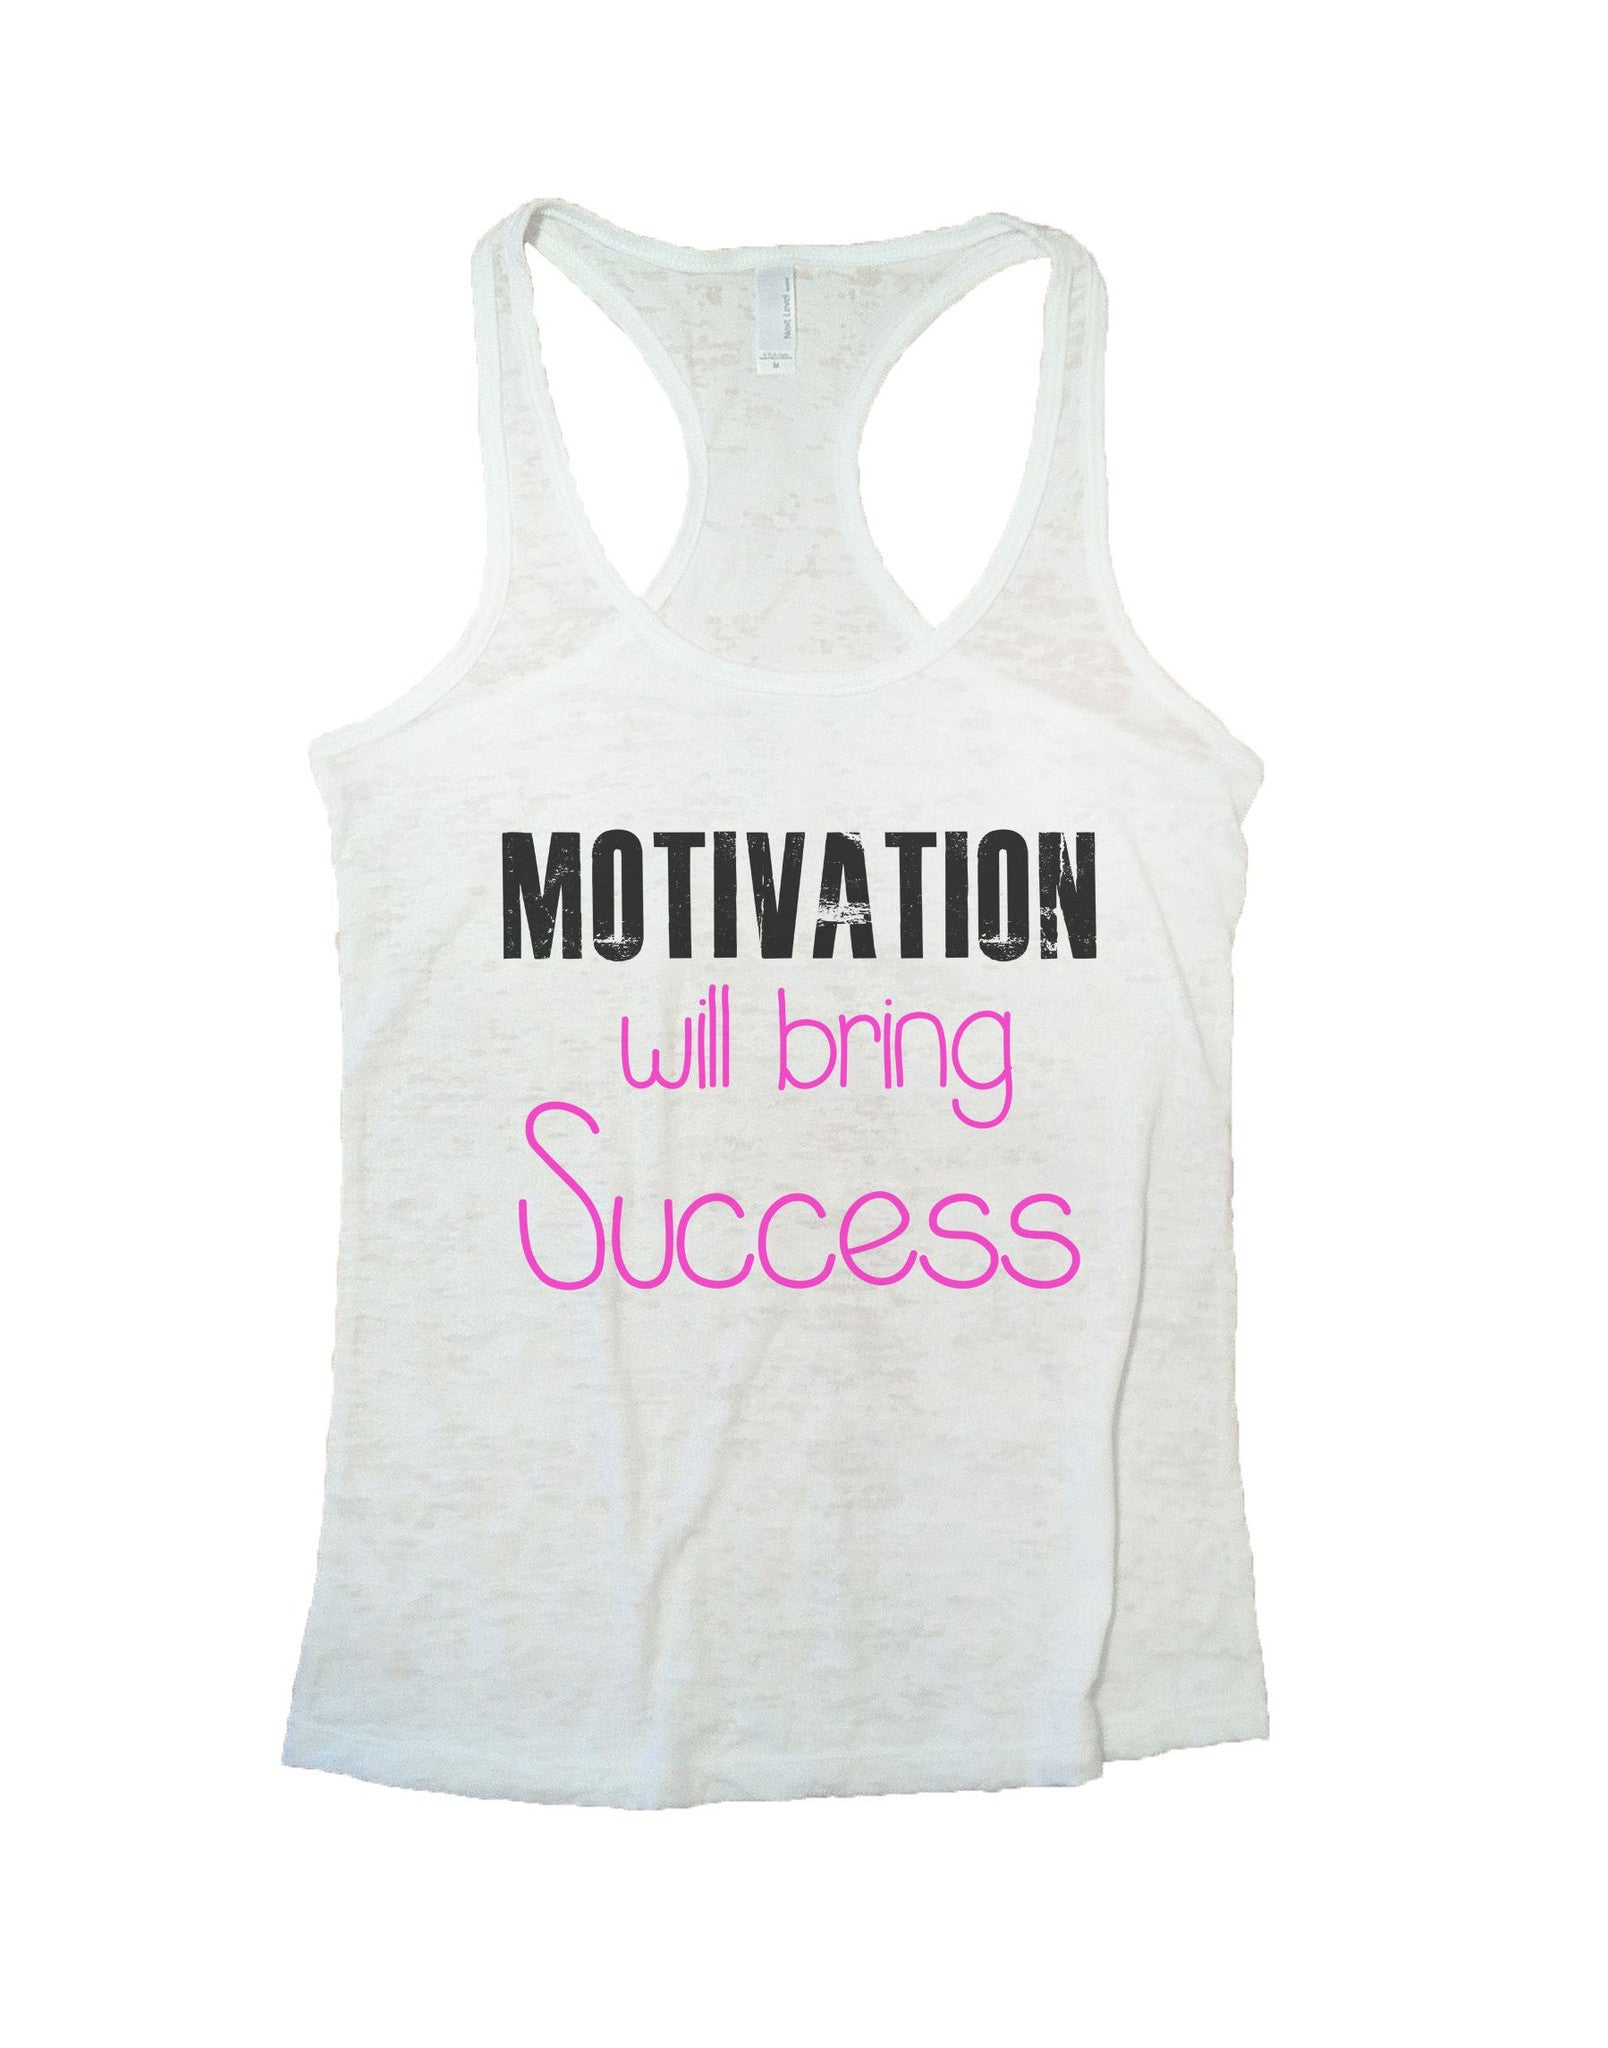 Motivation Will Bring Success Burnout Tank Top By BurnoutTankTops.com - 682 - Funny Shirts Tank Tops Burnouts and Triblends  - 4